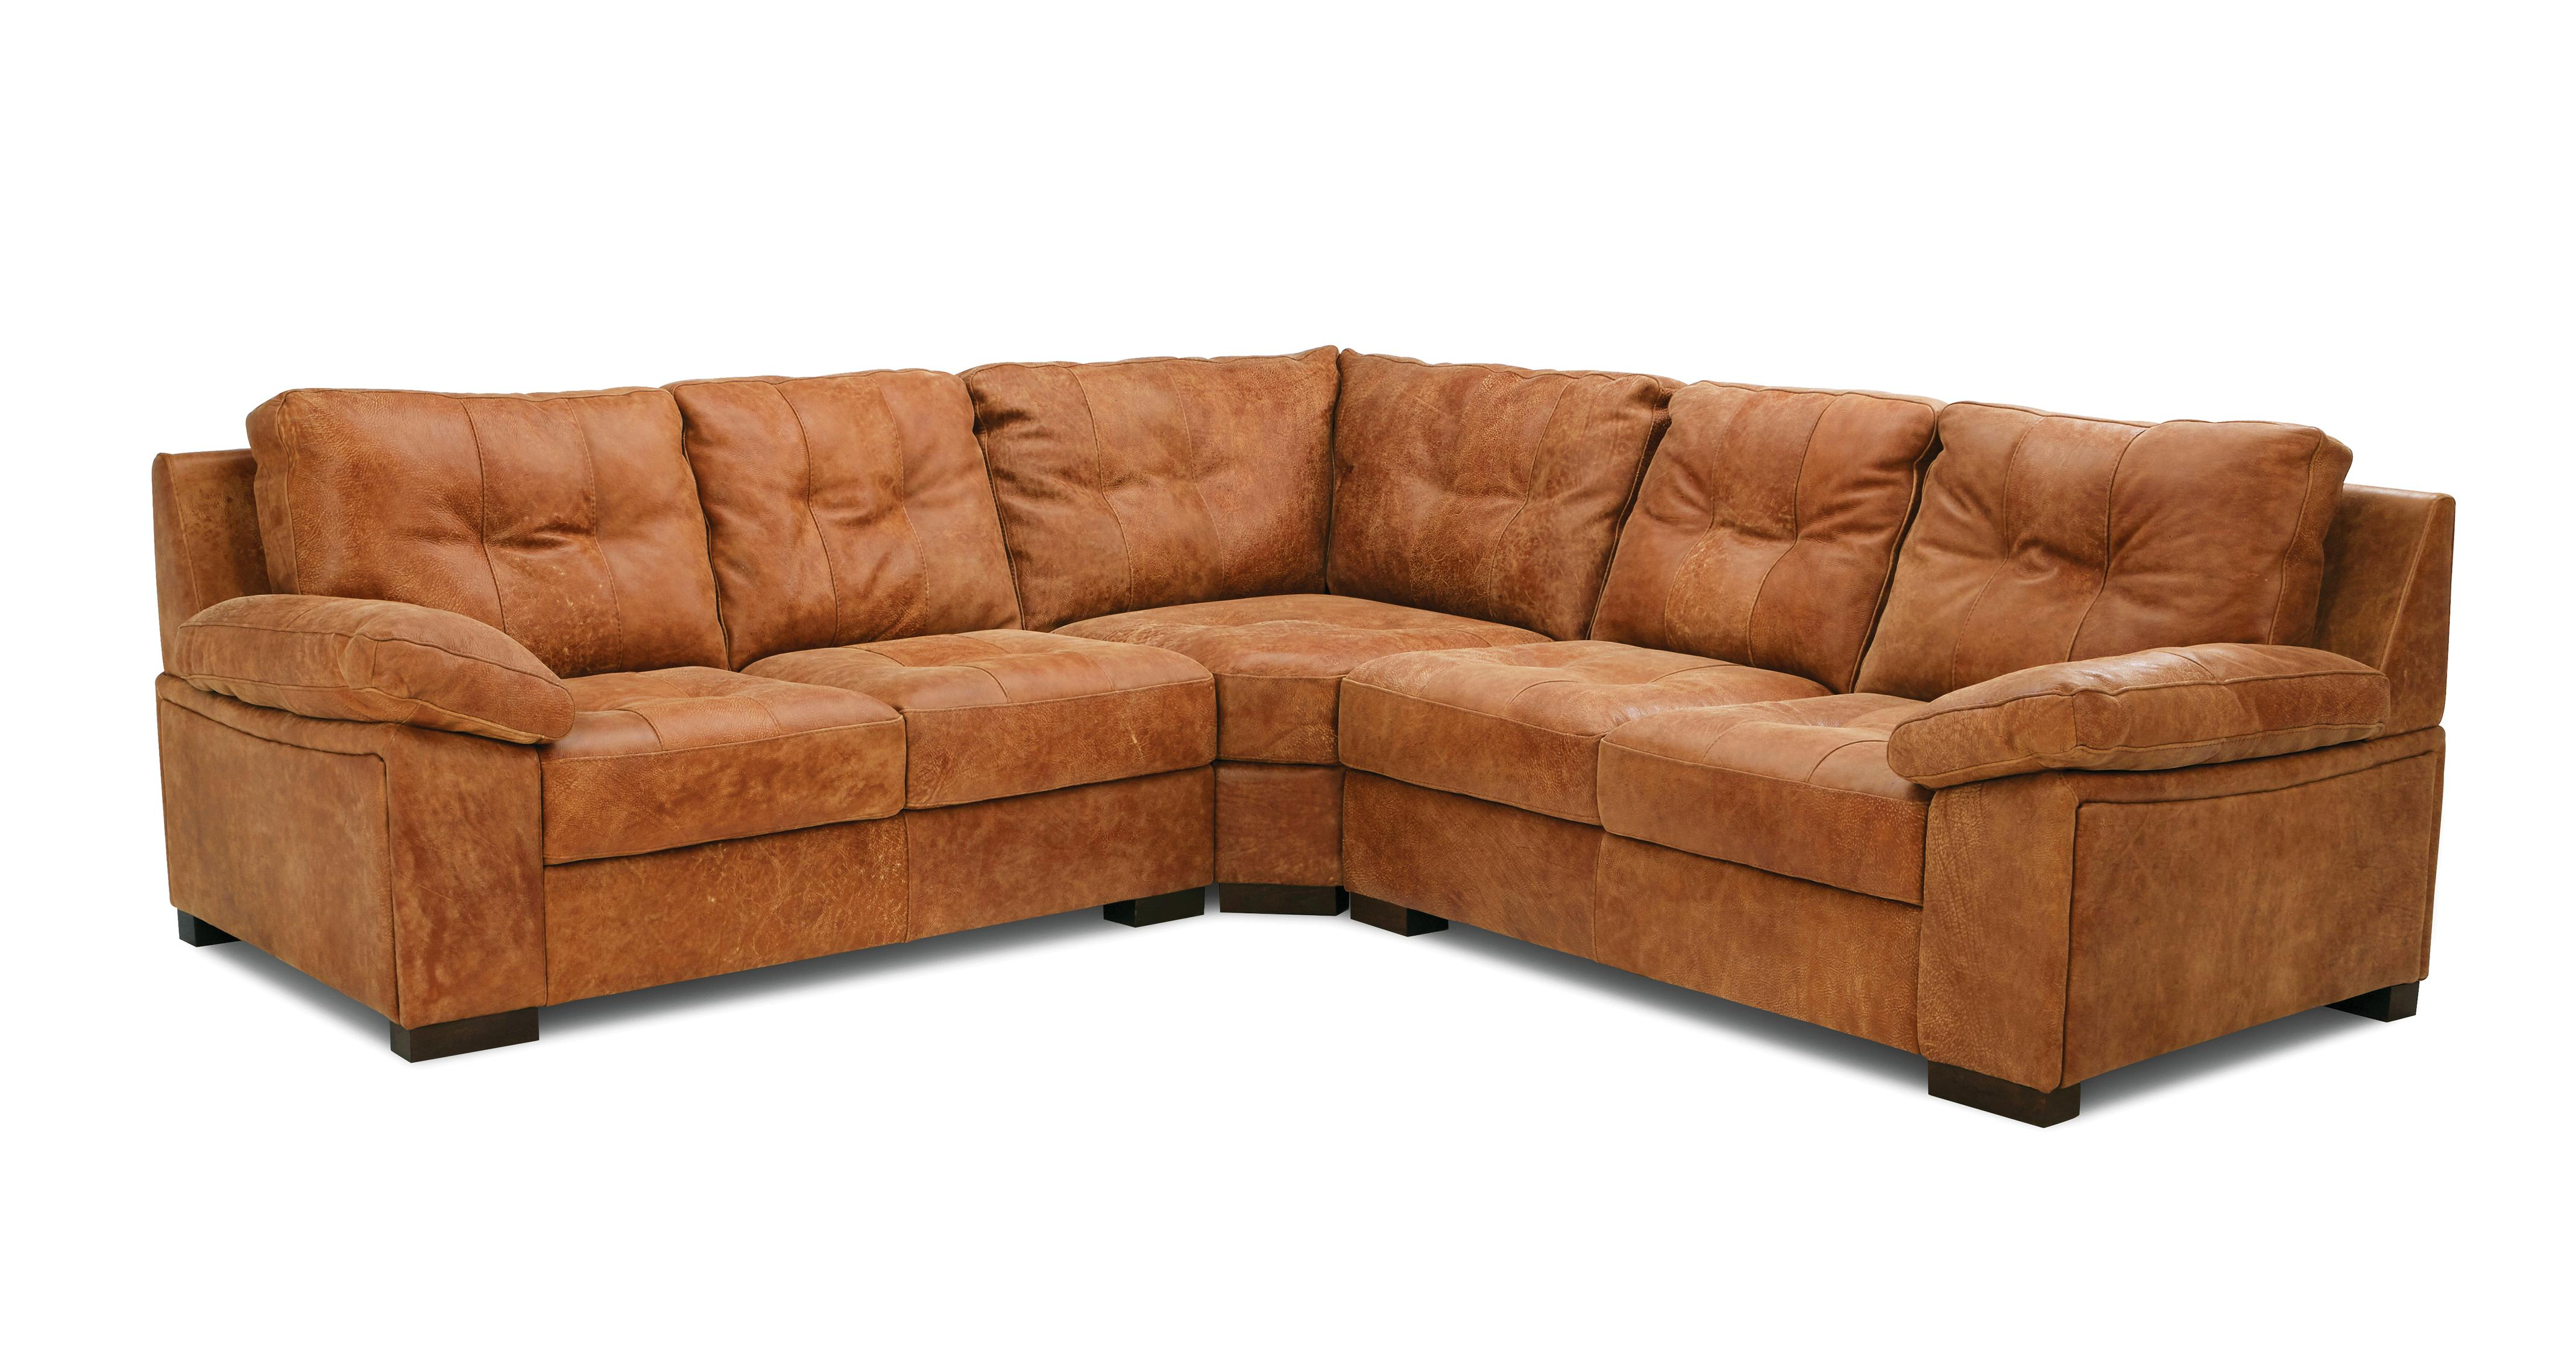 sofa clearance sydney extra long modern leather dfs brokeasshome